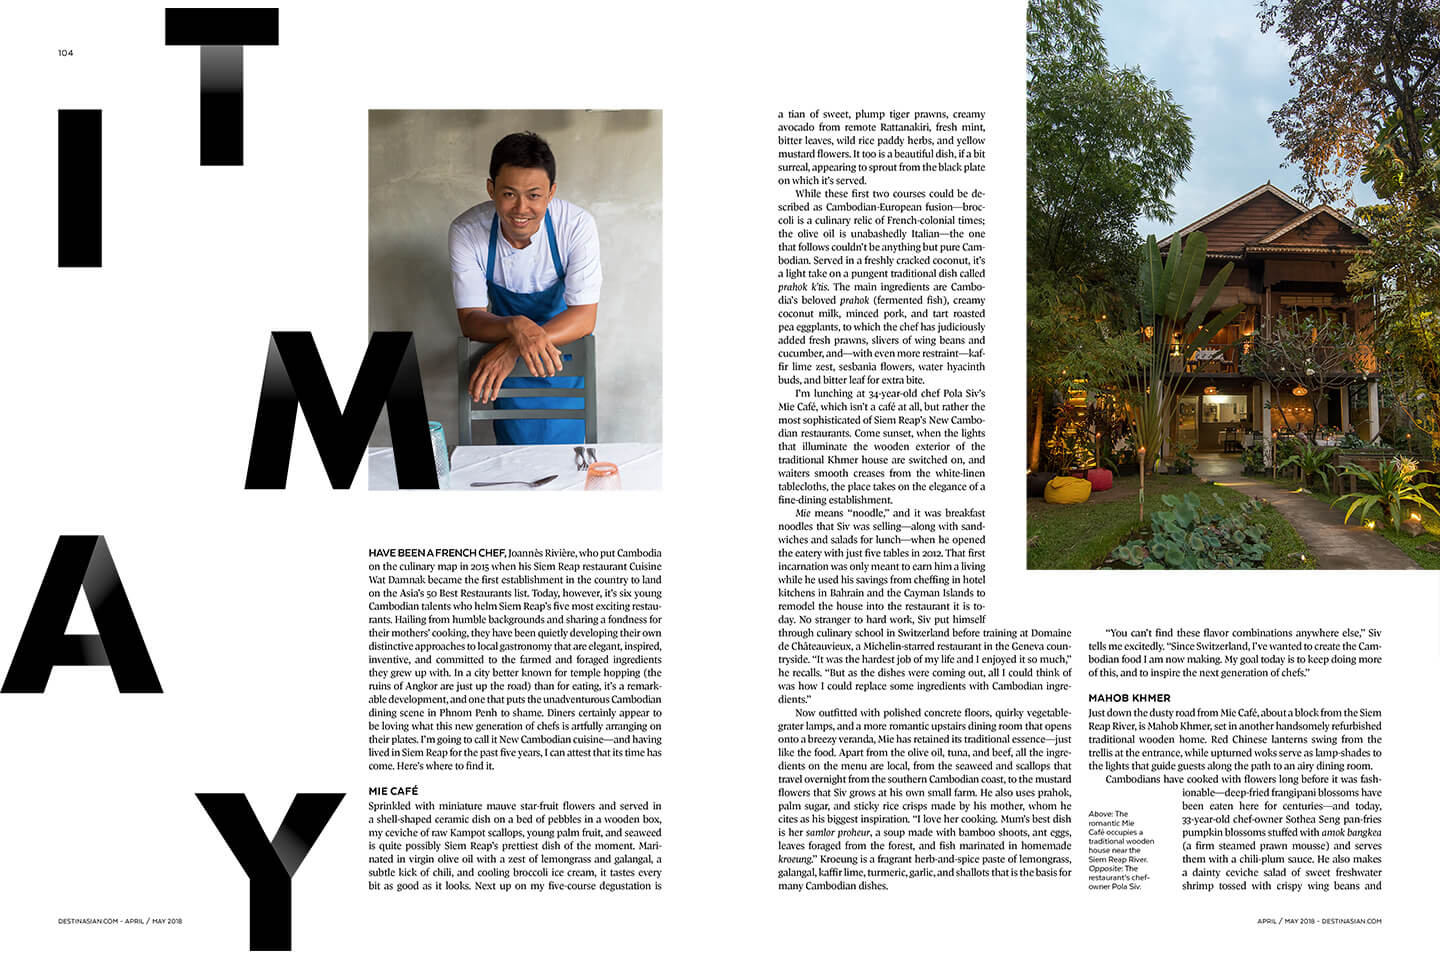 DestinAsian Magazine feature story. Cambodia's New Crop. A clutch of restaurants run by young homegrown chefs is raising the profile of Siem Reap as a bona fide food destination — and preserving Cambodia's culinary traditions in the process.